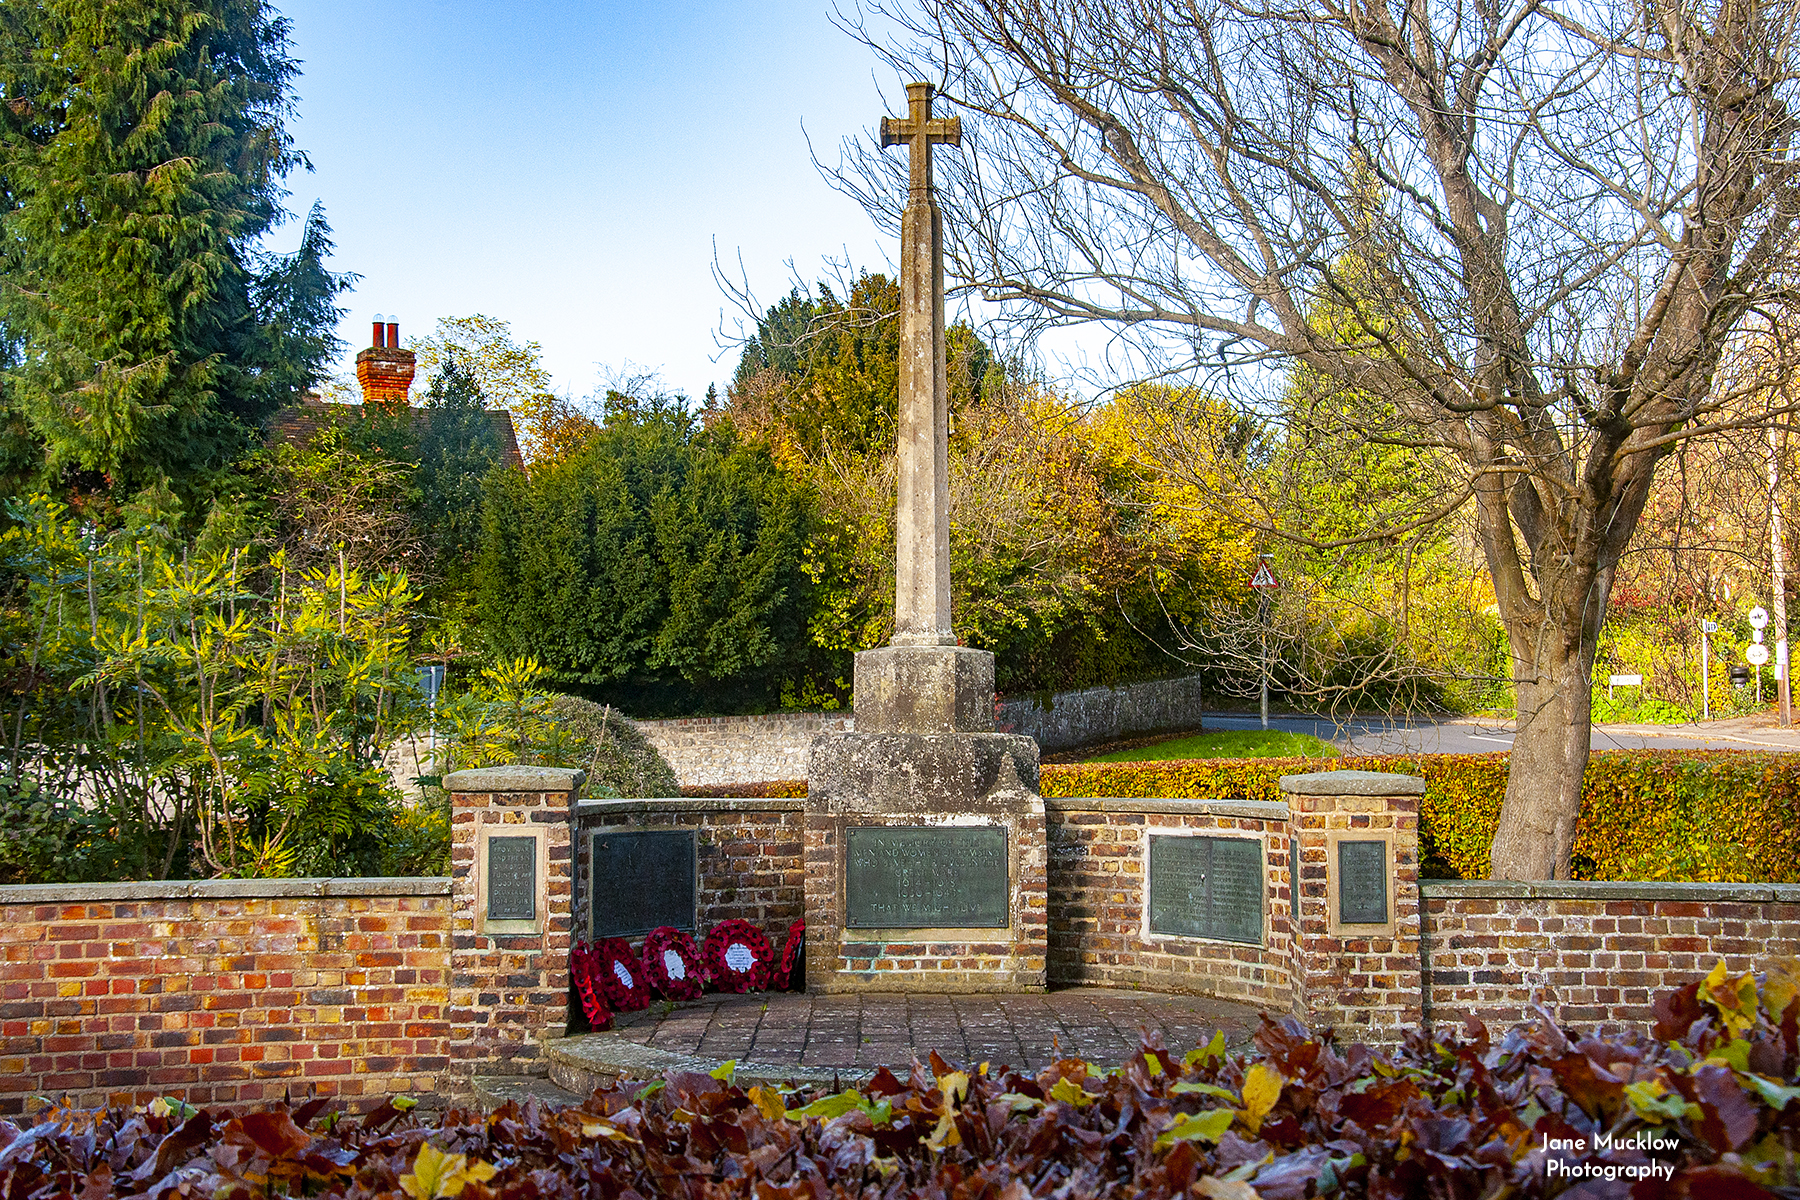 Photo of the war memorial in Kemsing, with Autumn leaves and poppy wreaths, by Jane Mucklow